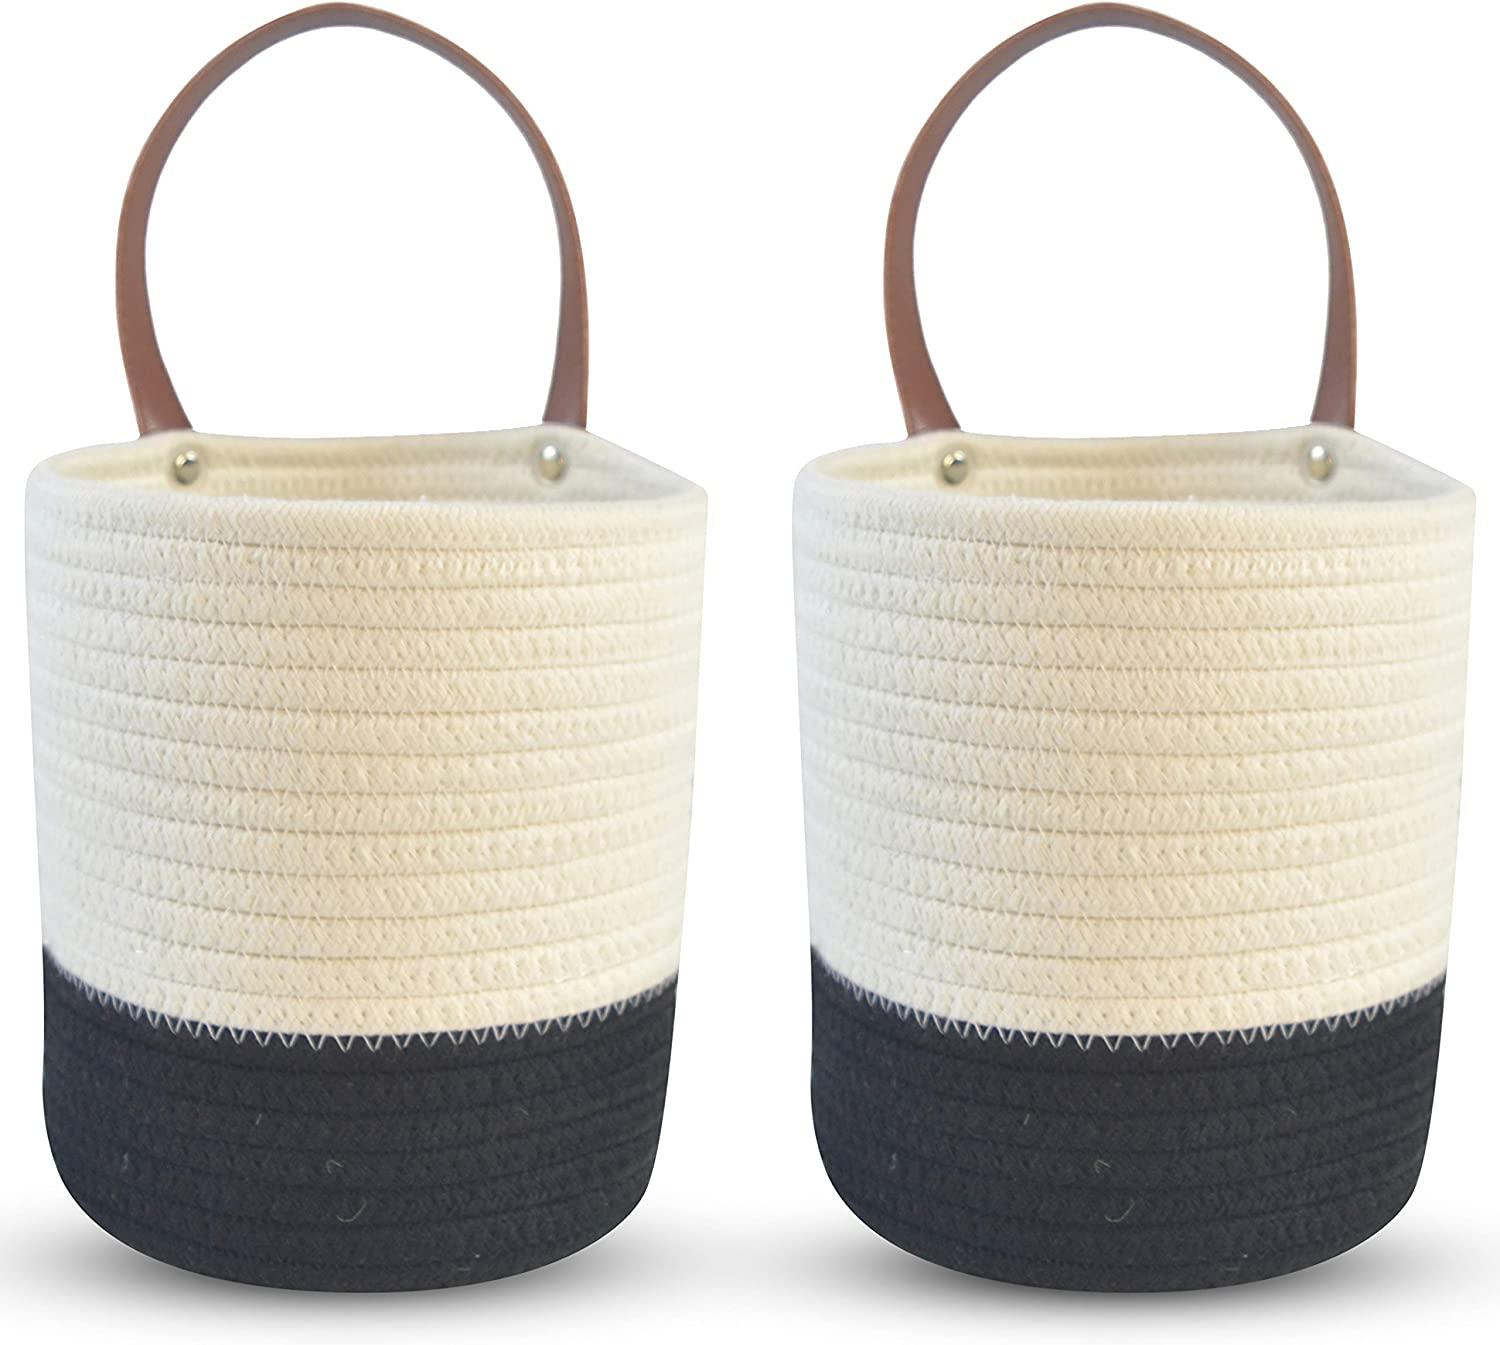 """2-Pack Cotton Rope Hanging Baskets - Small Boho Woven Planter for Indoor Plants & Flowers - Farmhouse Decor Wall-Mounted Storage with Handle for Home, Bathroom, Entryway - 6.3"""" x 7"""" - White & Black"""